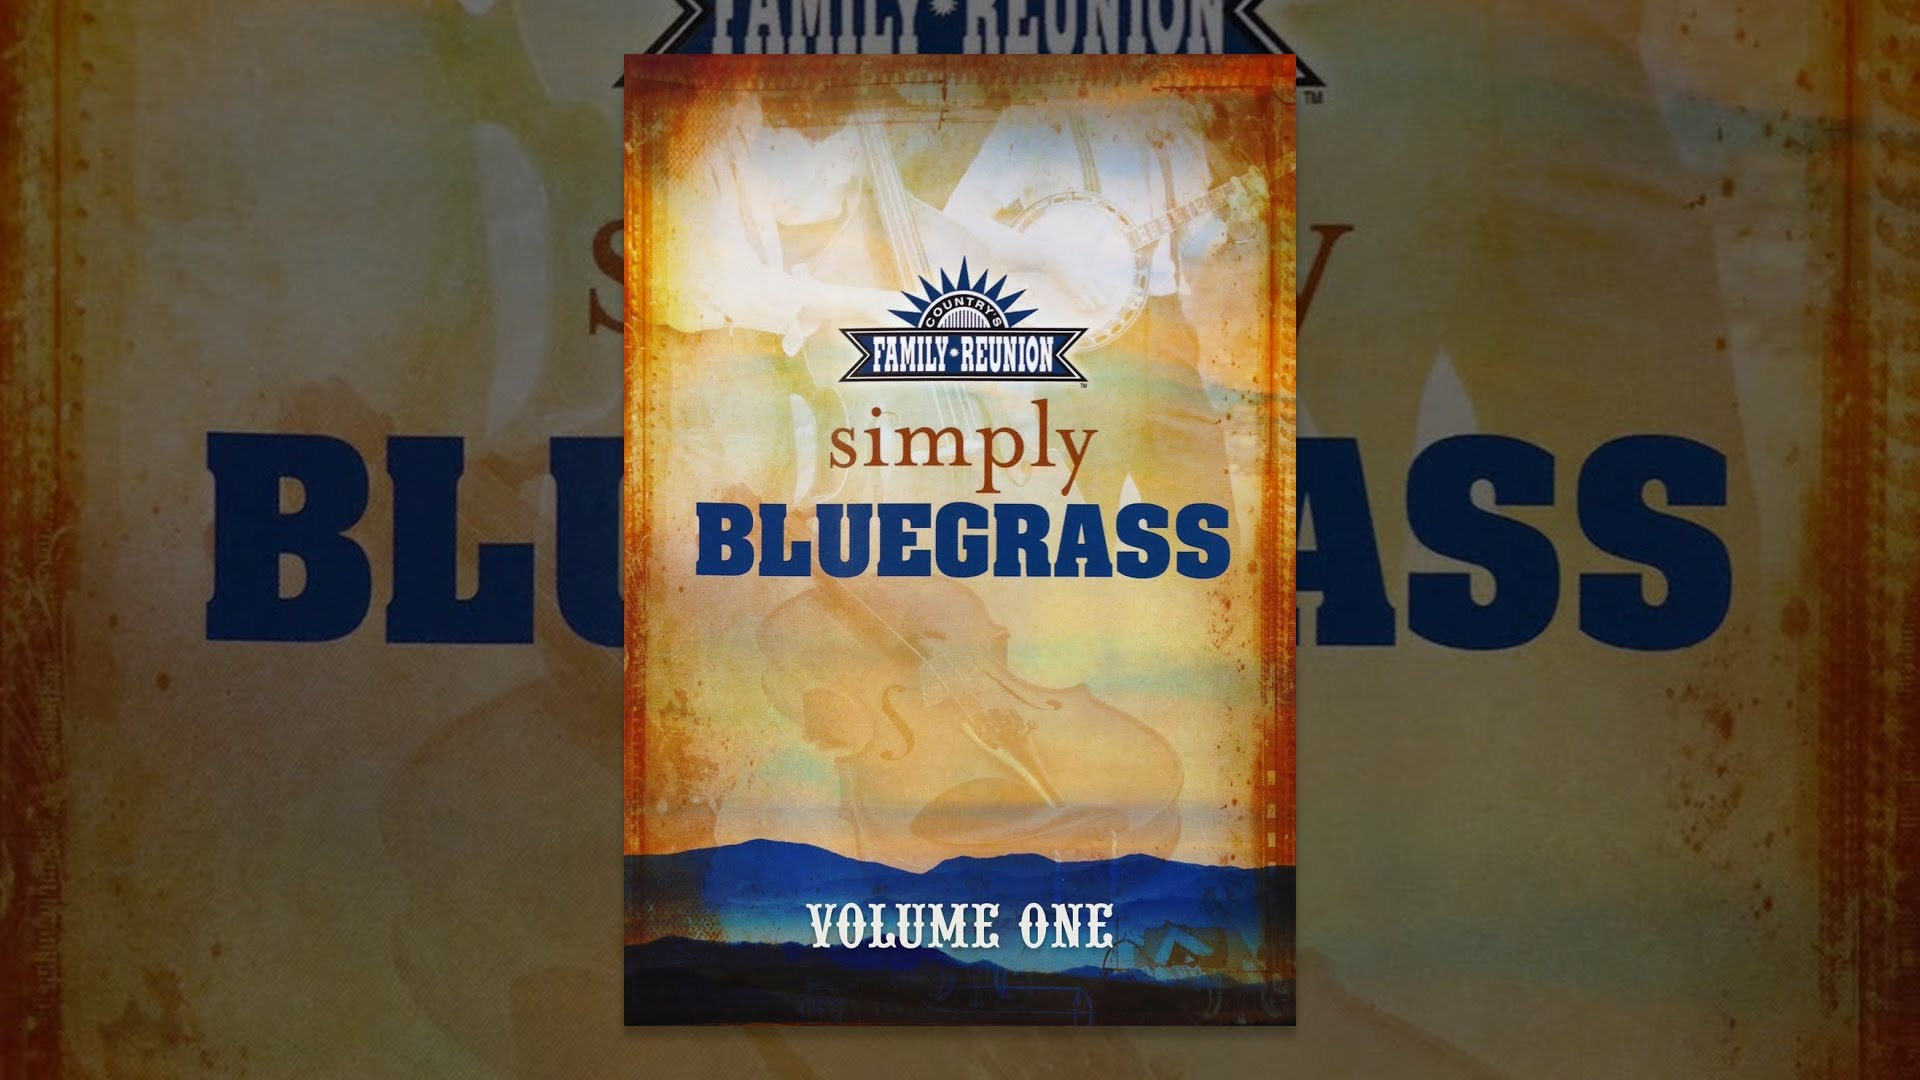 Country's Family Reunion Presents Simply Bluegrass: Volume One